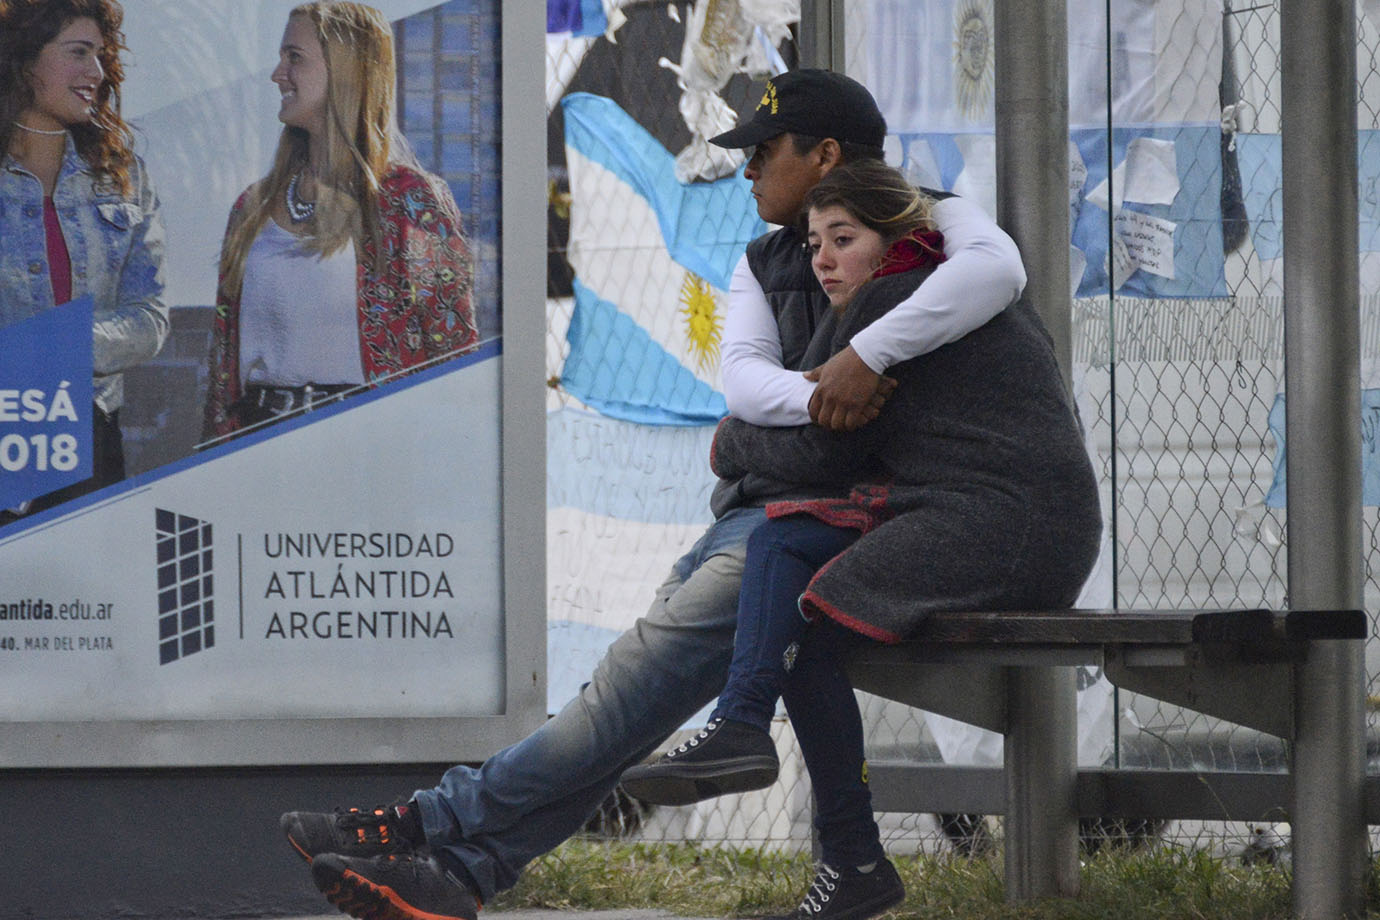 Relatives of crew members from the missing ARA San Juan submarine hug outside the navy base in Mar d